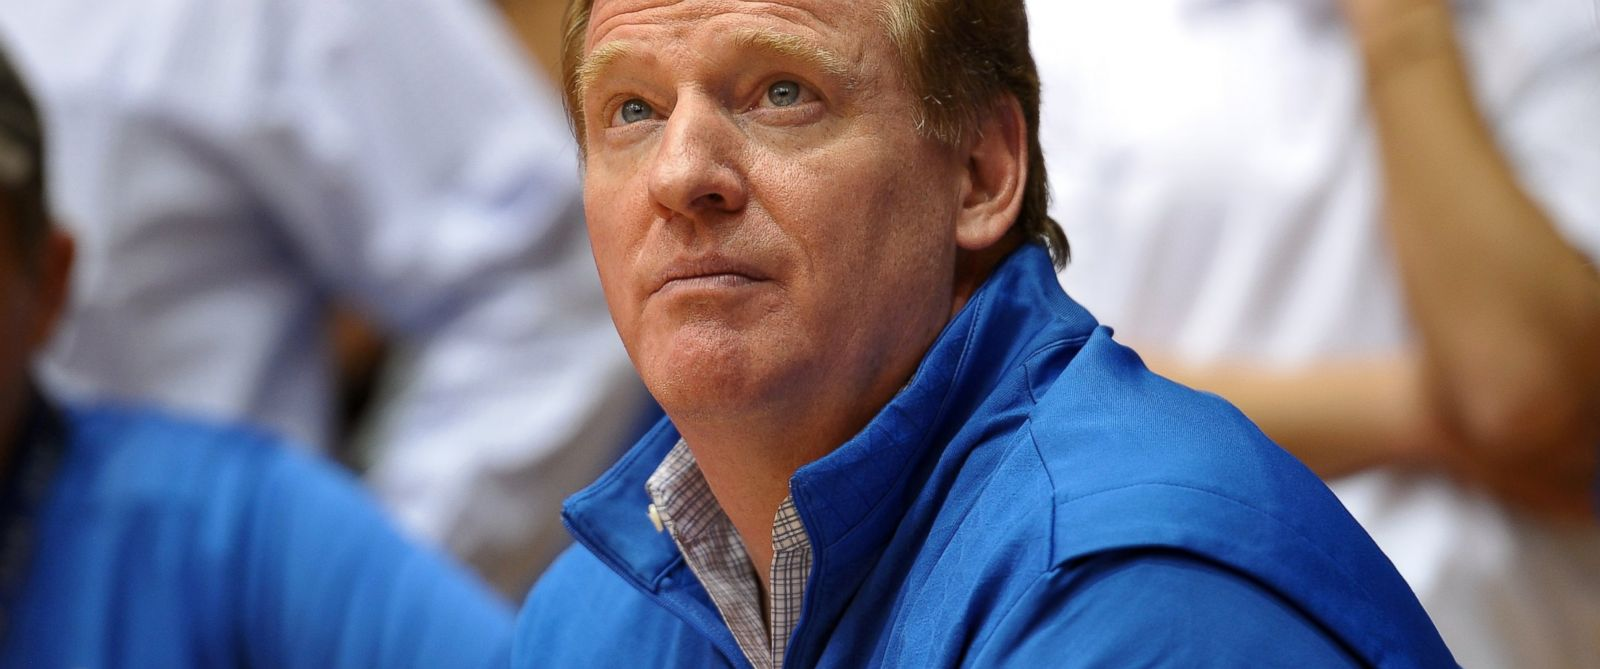 PHOTO: NFL Commissioner Roger Goodell attends a North Carolina Tar Heels game at Cameron Indoor Stadium, March 8, 2014 in Durham, North Carolina.